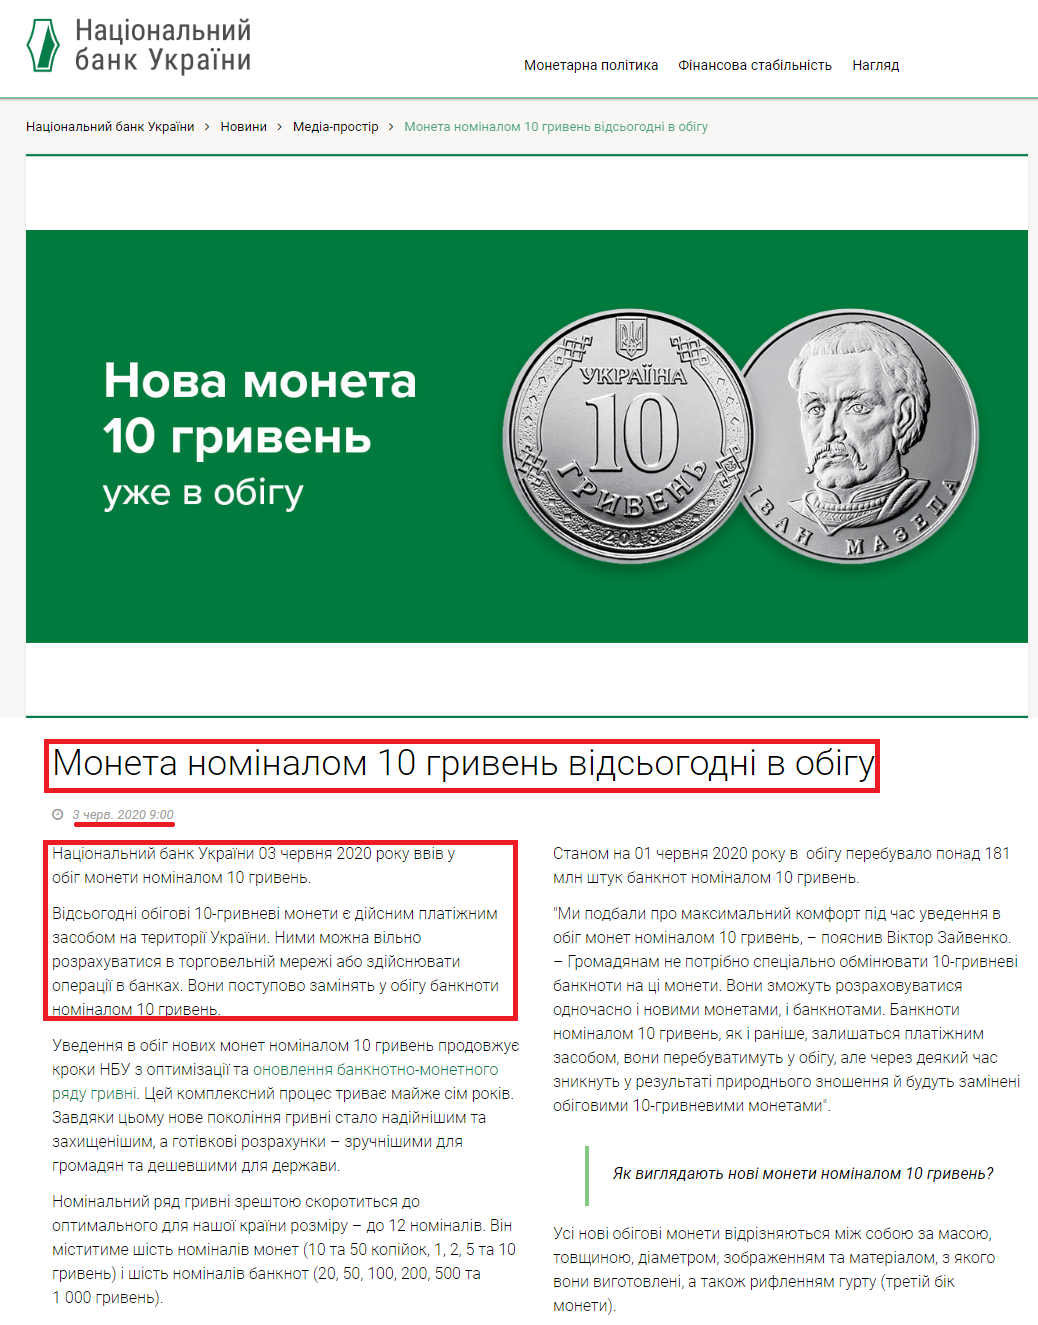 https://bank.gov.ua/ua/news/all/moneta-nominalom-10-griven-vidsogodni-v-obigu